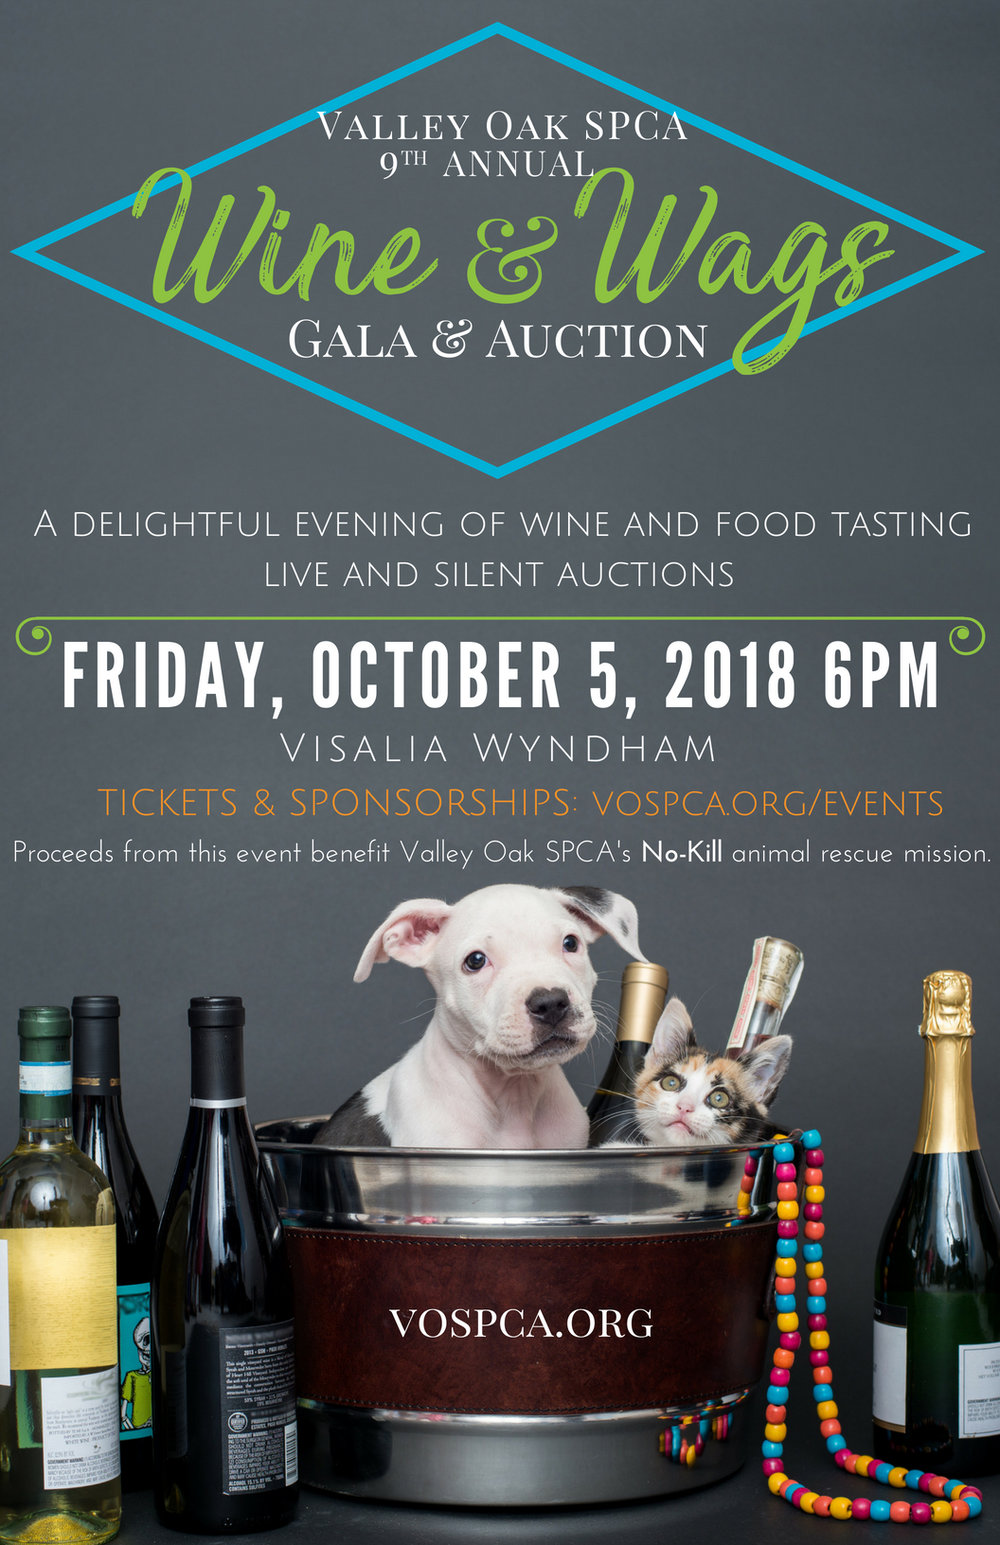 7th Annual Valley Oak SPCA-7.jpg